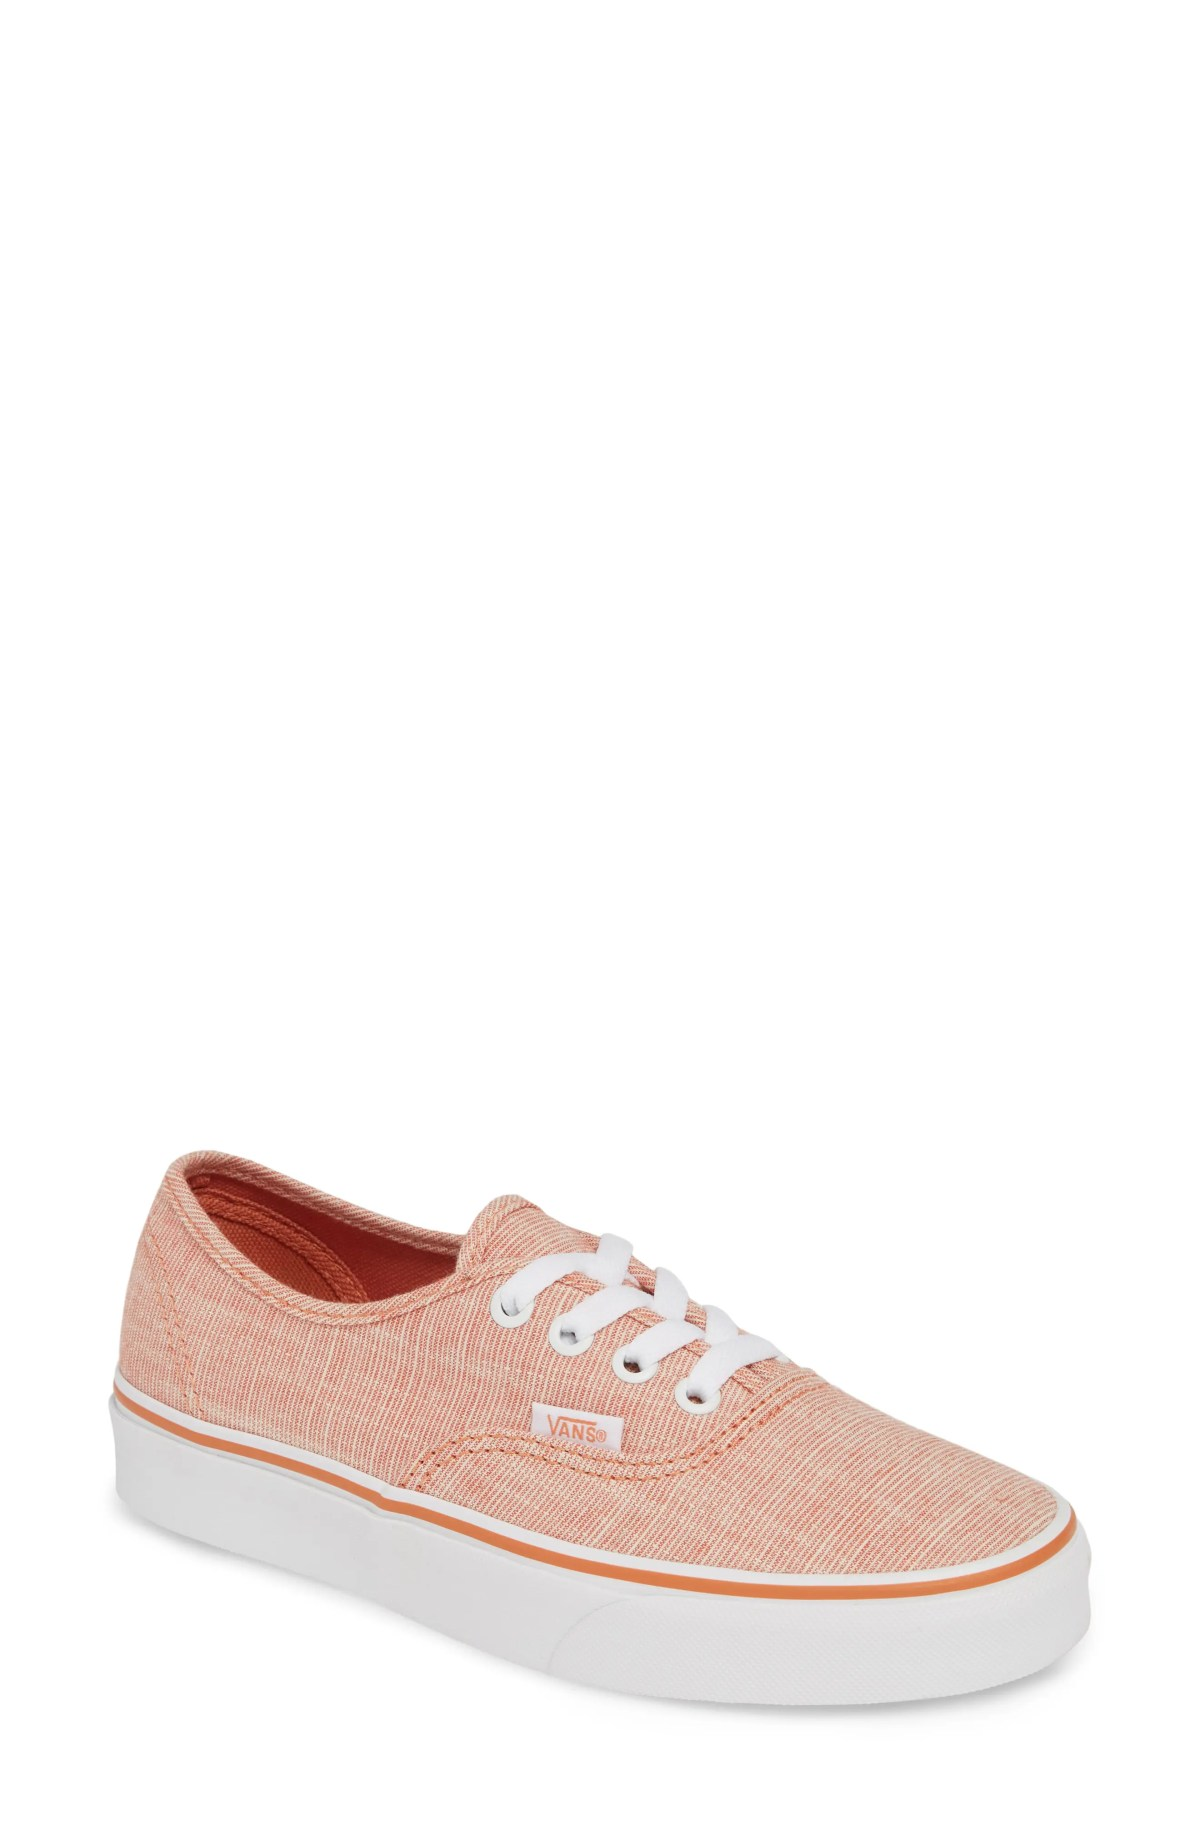 VANS 'Authentic' Sneaker, Main, color, CHAMBRAY CARNELIAN/ TRUE WHITE